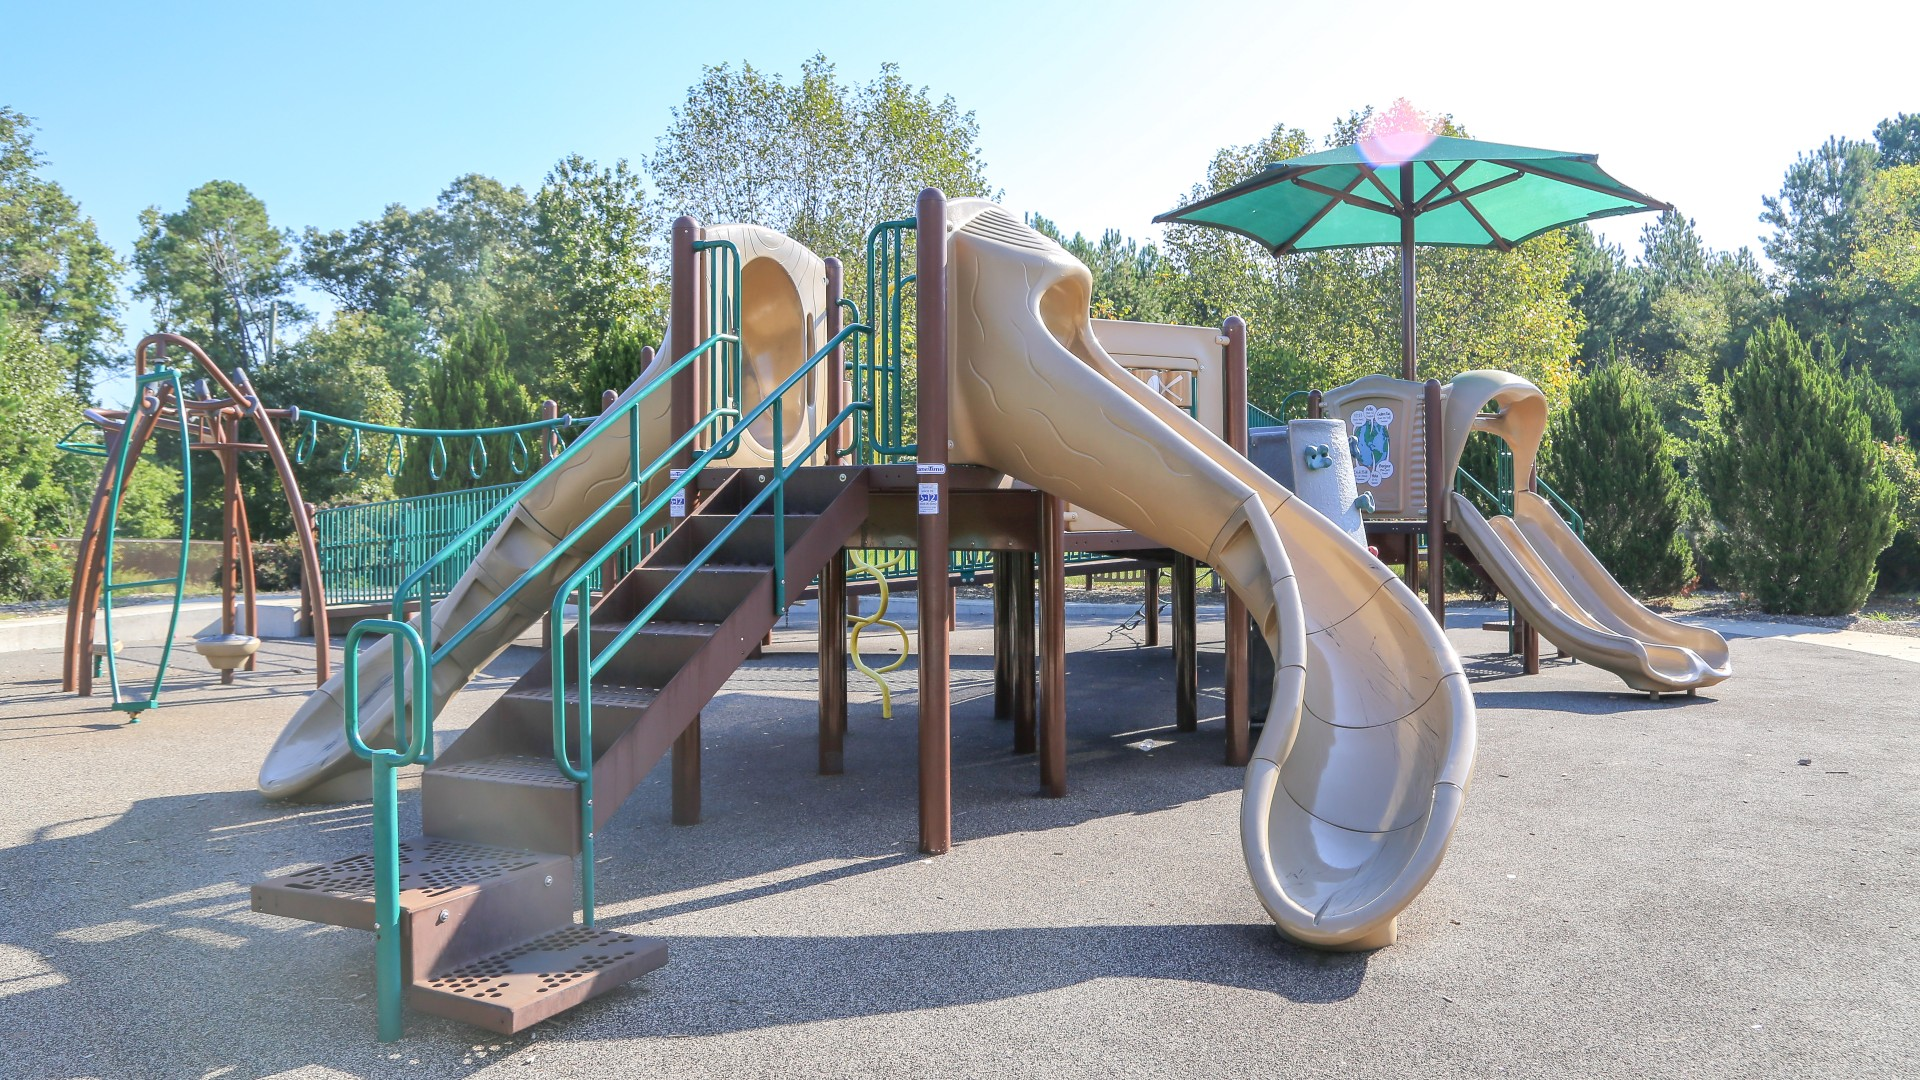 A second large playground for older children at marsh creek park